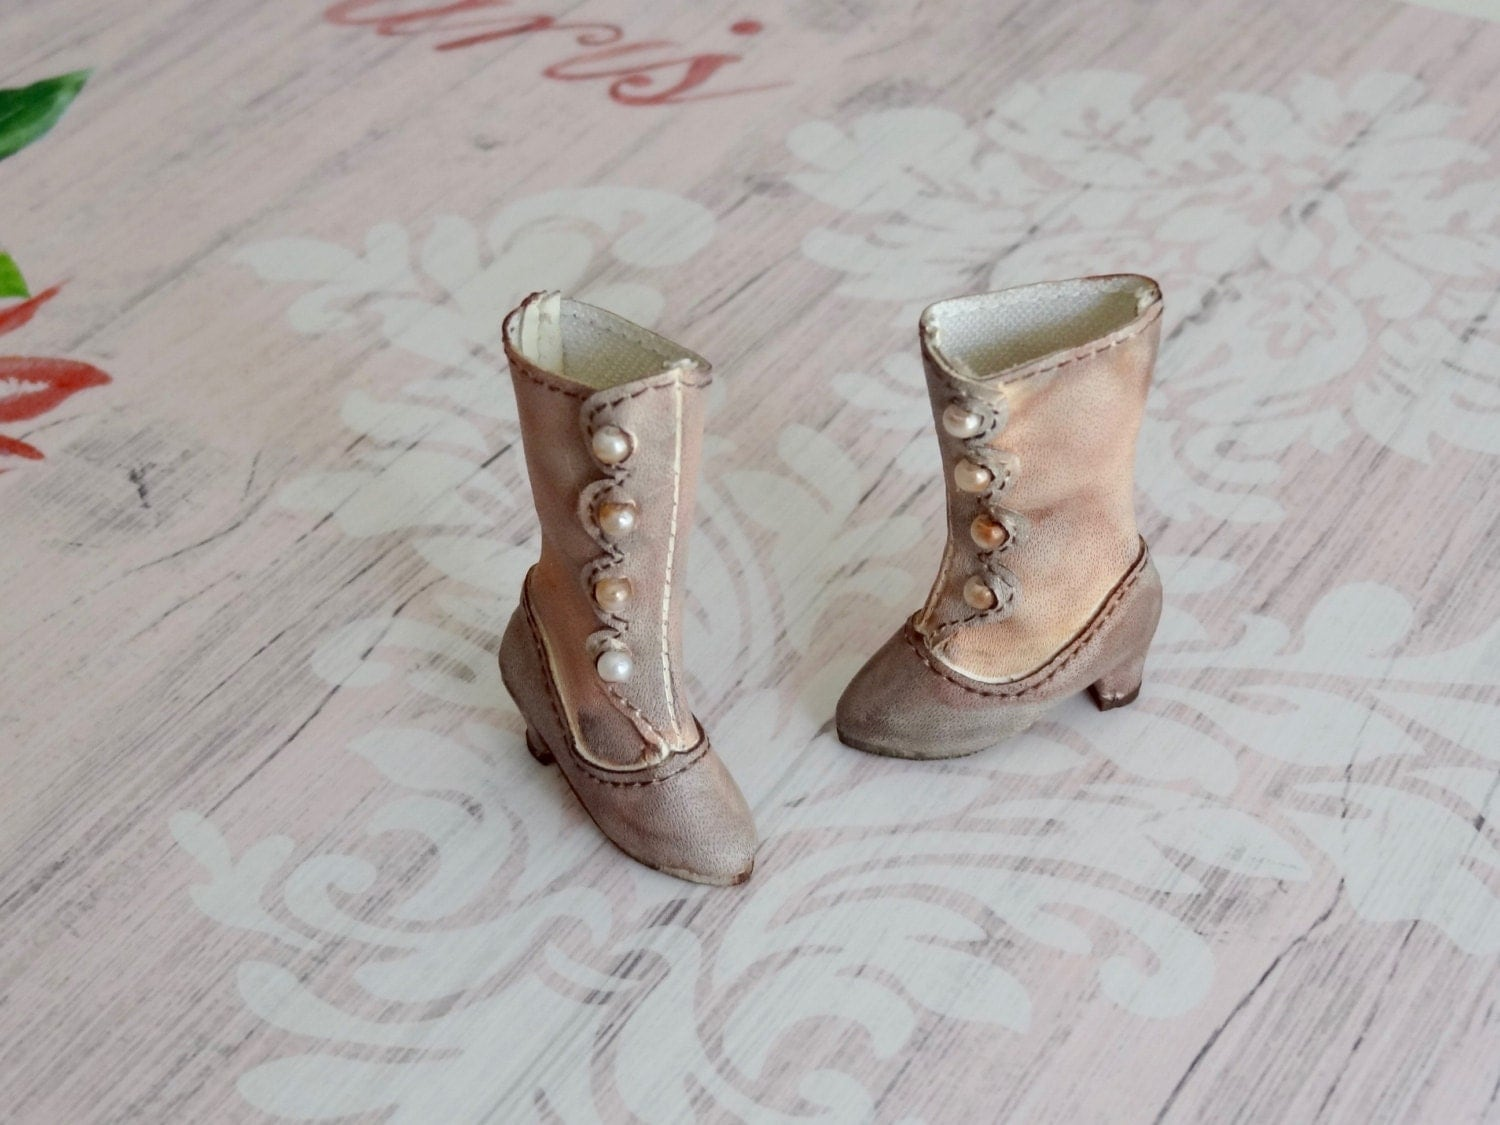 Victorian boots ooak 34 for blythe dolls all bodies and for Blythe le jardin